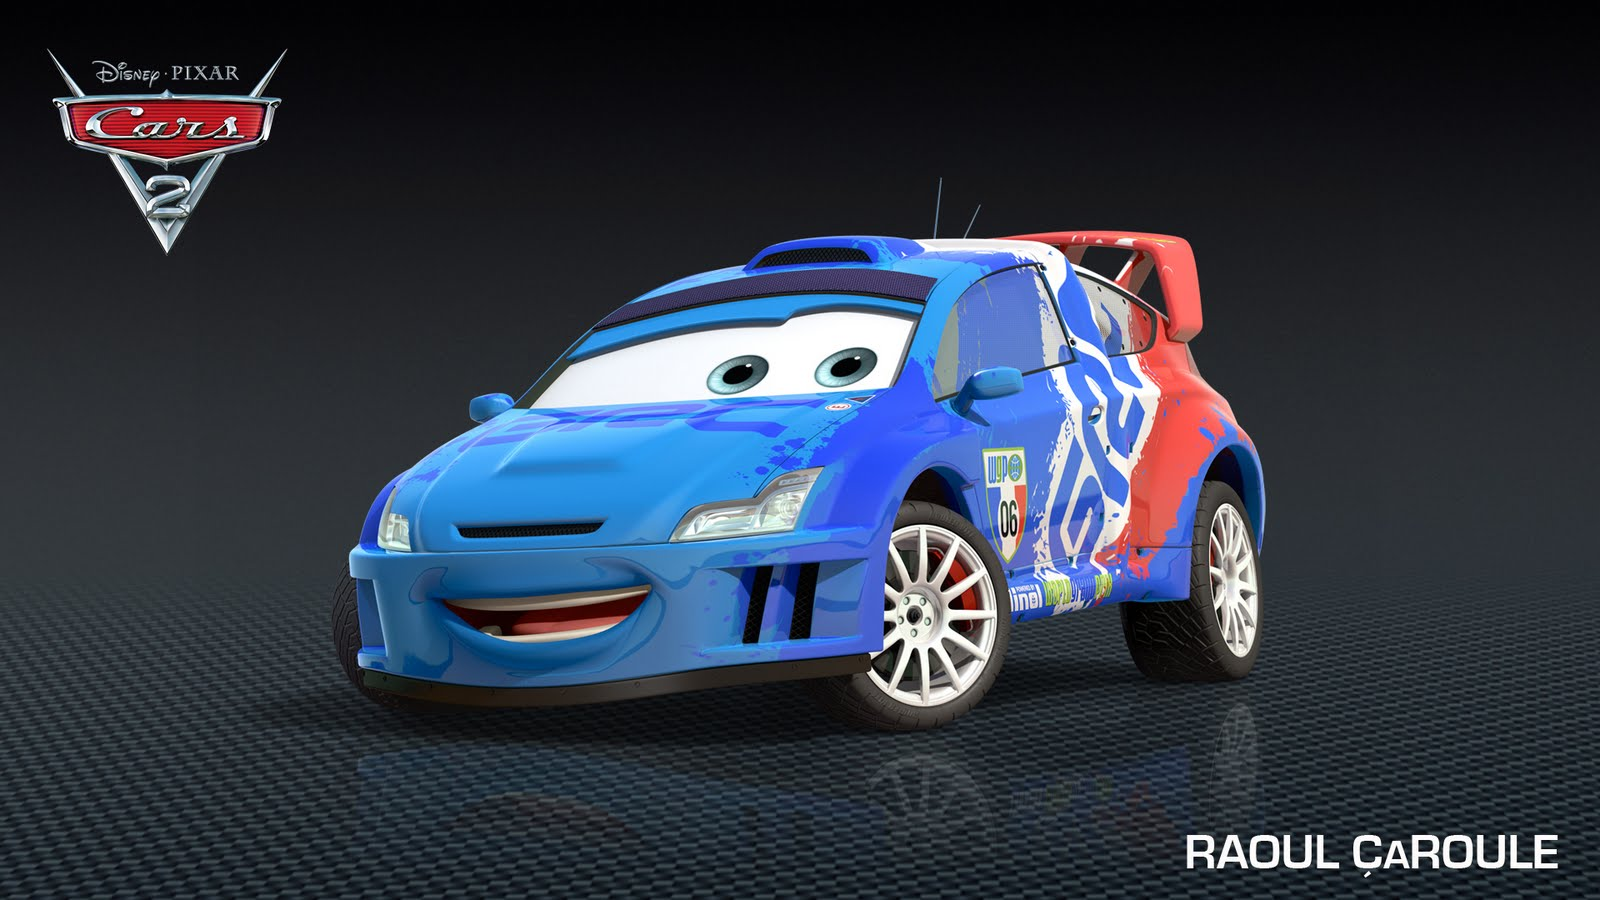 access pixar new cars 2 character raoul caroule. Black Bedroom Furniture Sets. Home Design Ideas